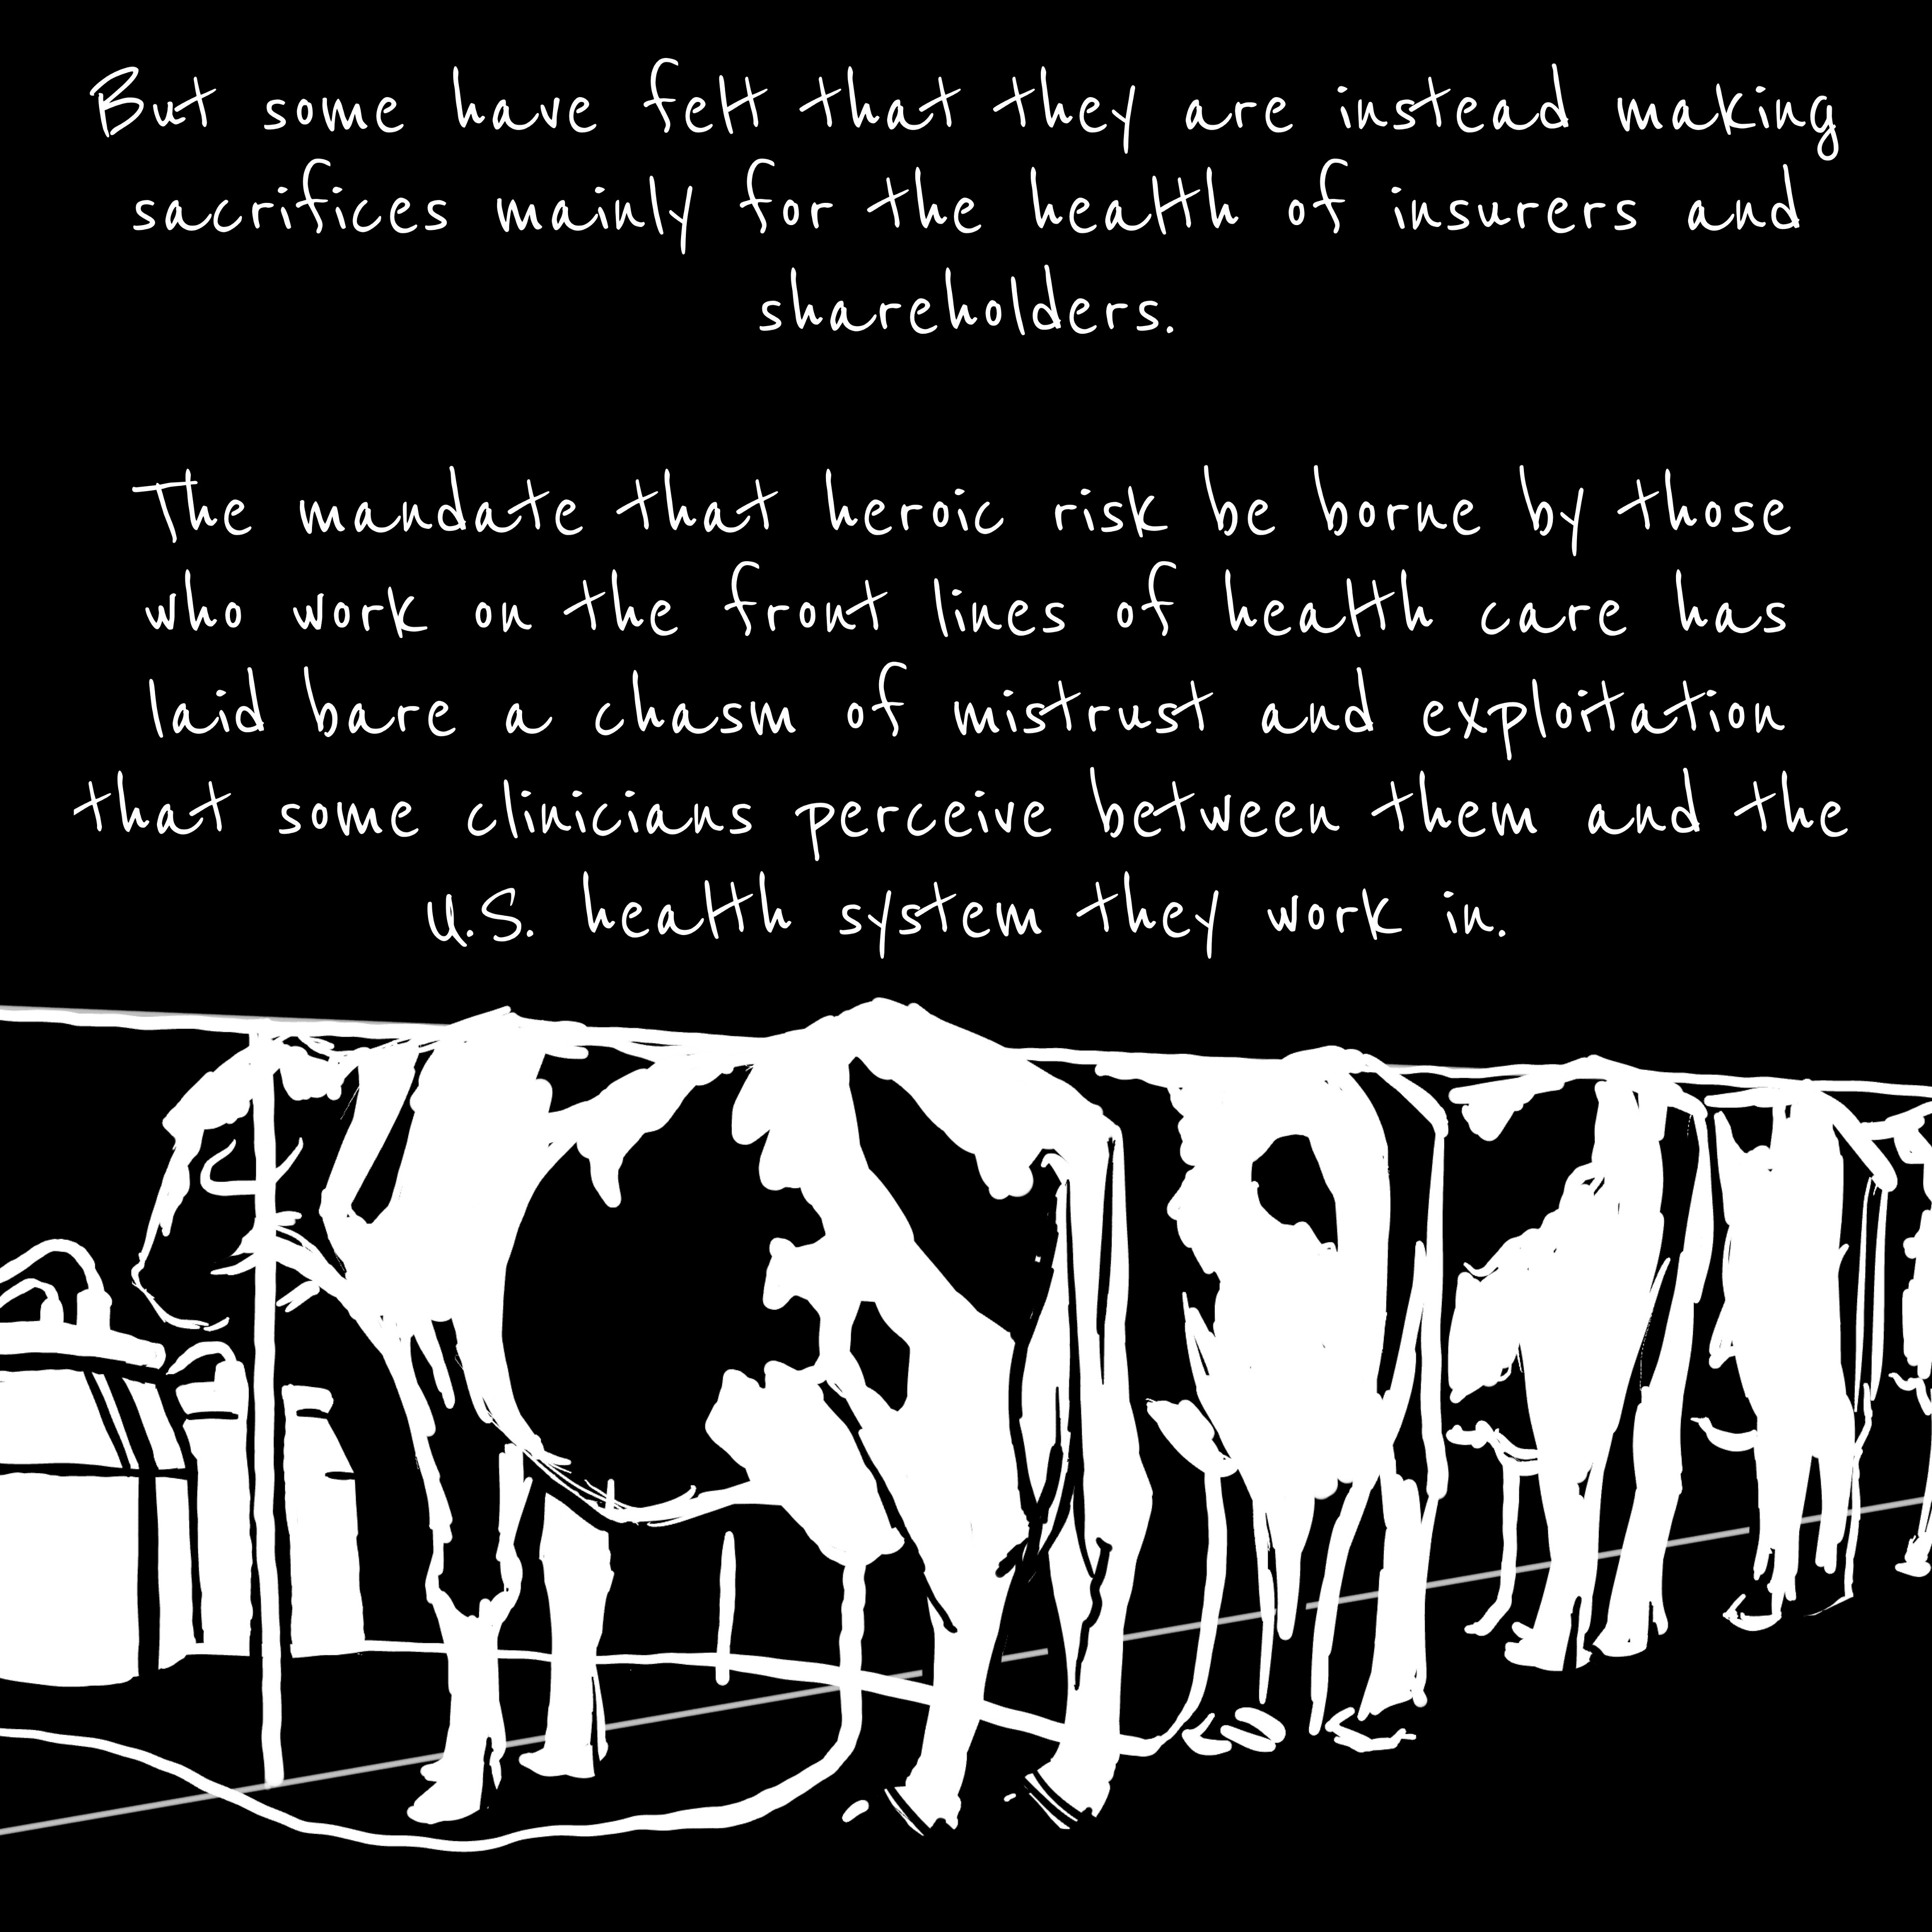 """Cows being milked: """"But many have instead felt that they are making sacrifices for the health of insurers."""""""